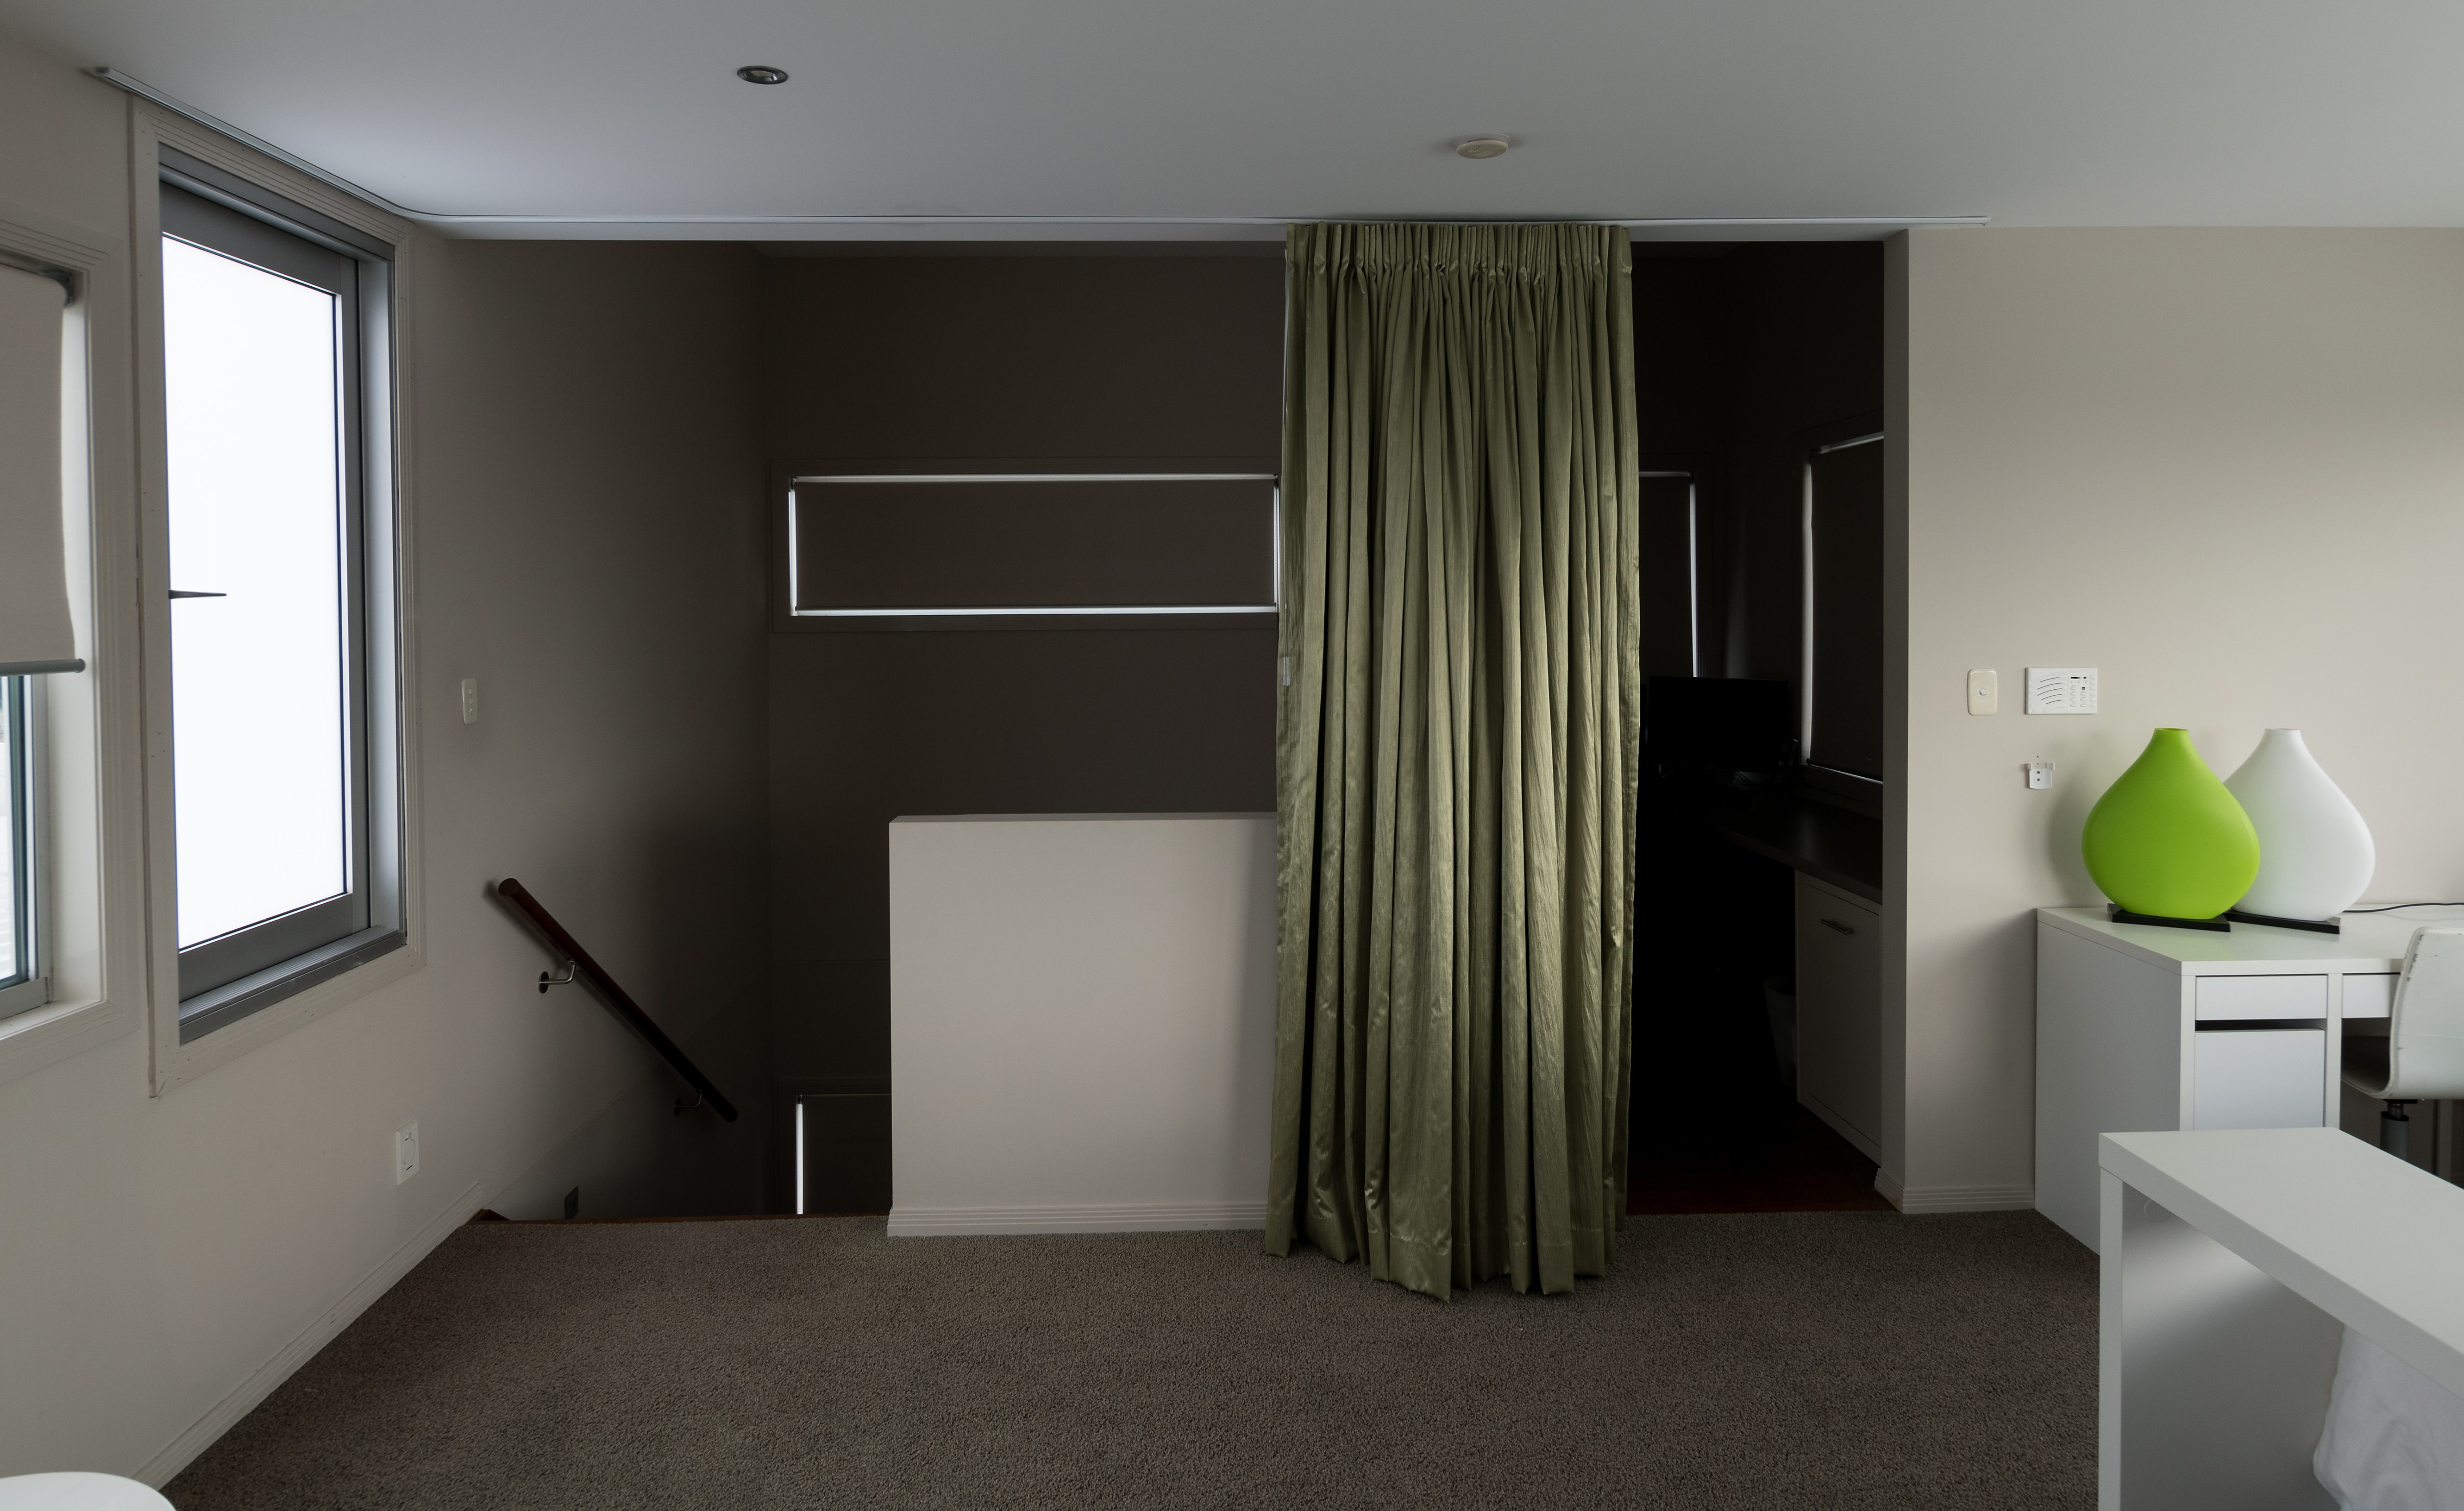 SPP curtain as noise, light and temp control, also room divider-open2